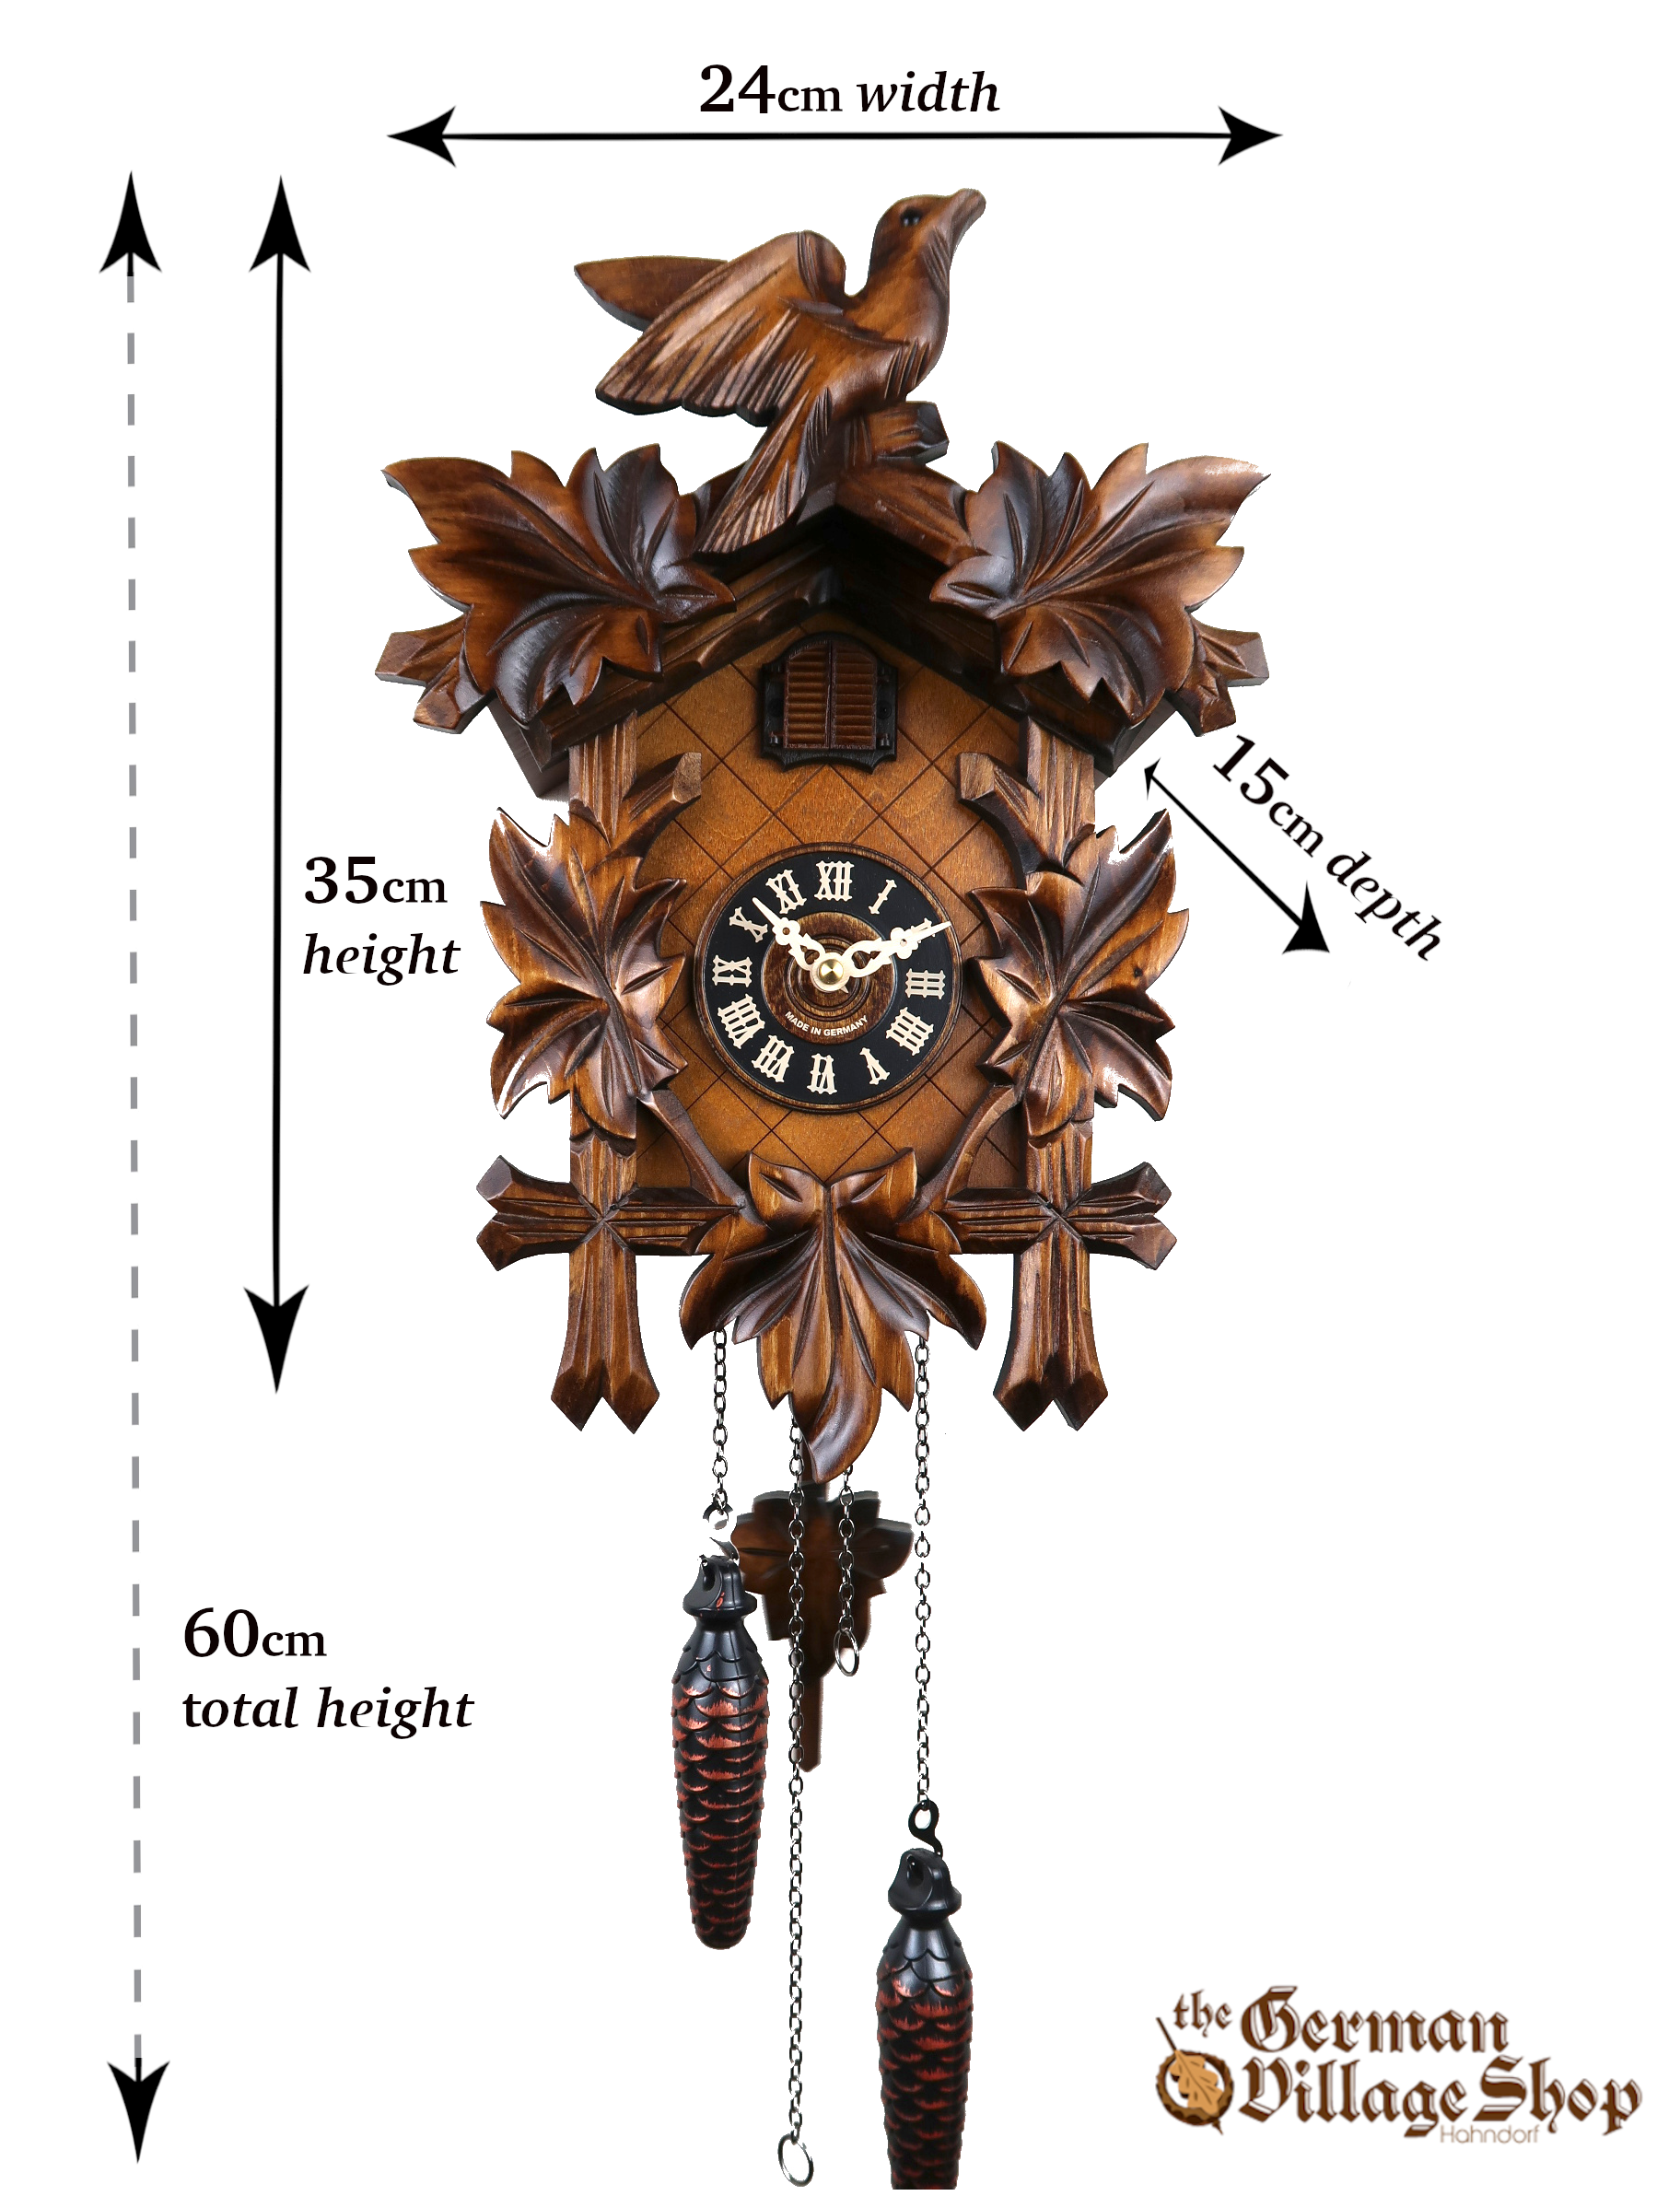 German Cuckoo Clock imported and for sale in Australia